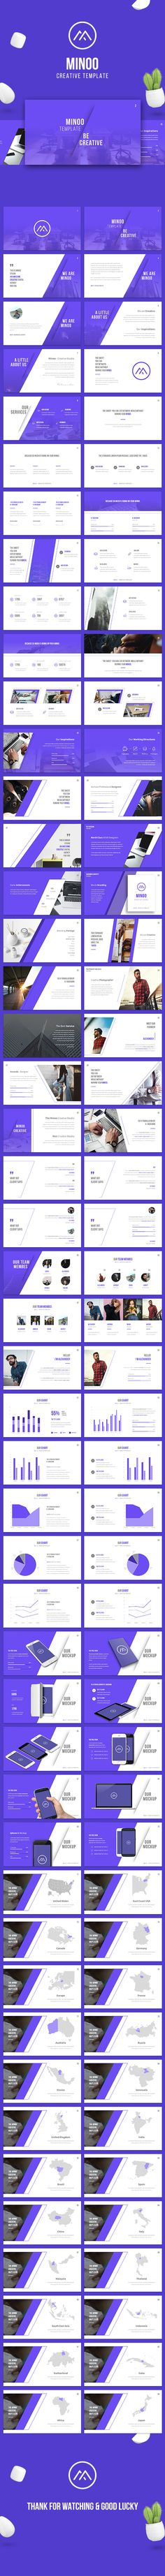 Minoo - Creative Powerpoint Template